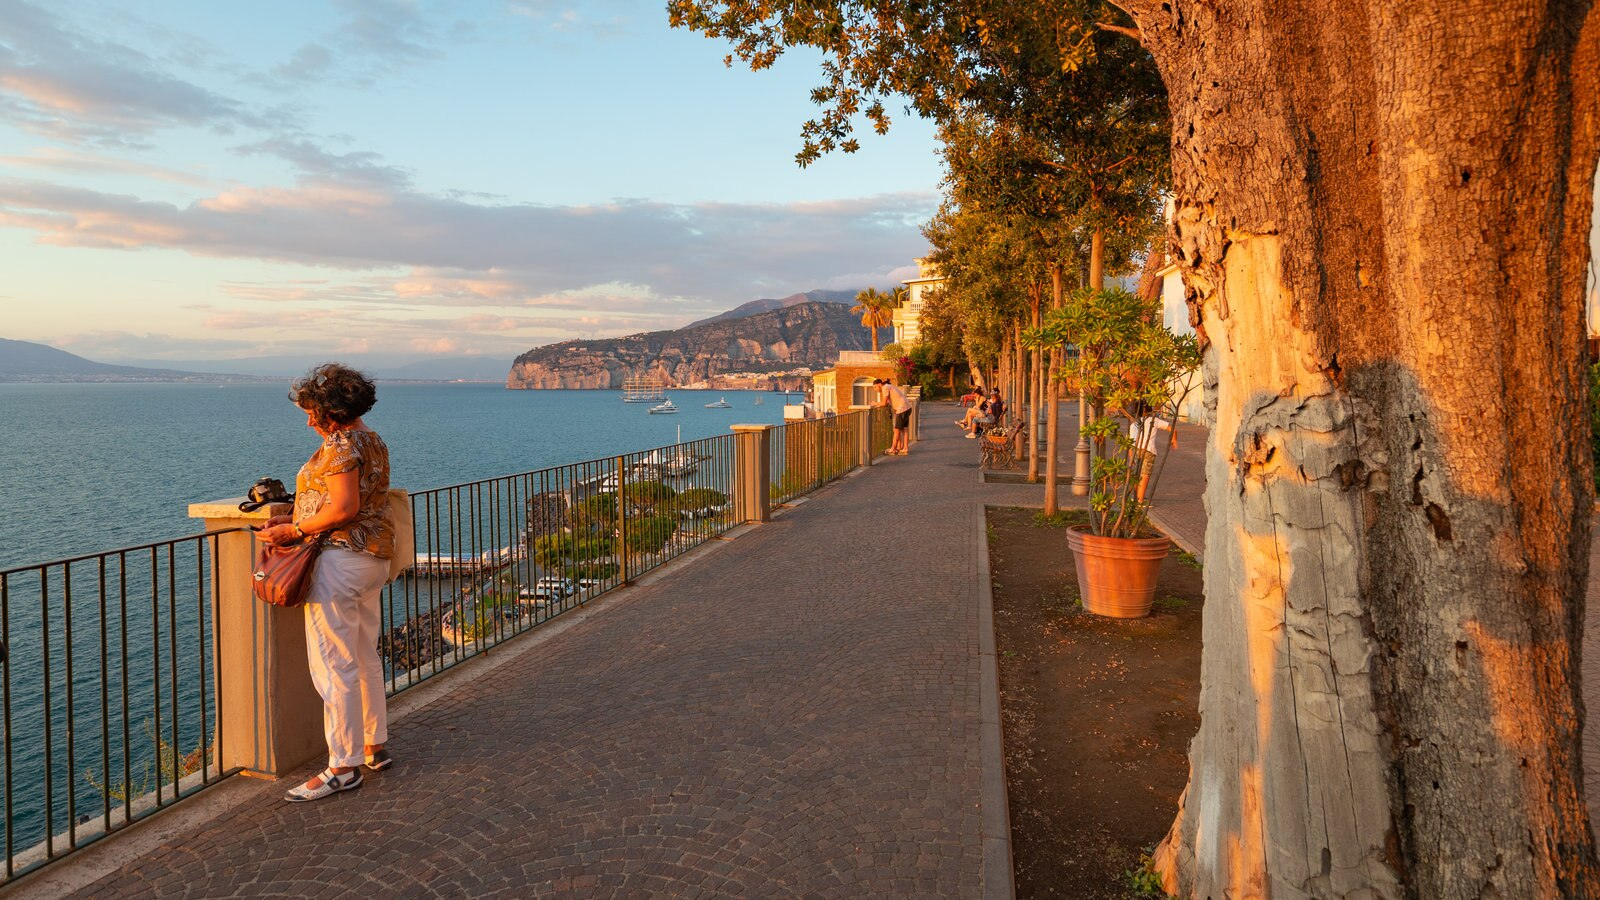 Villa Comunale Park which includes a sunset, views and general coastal views